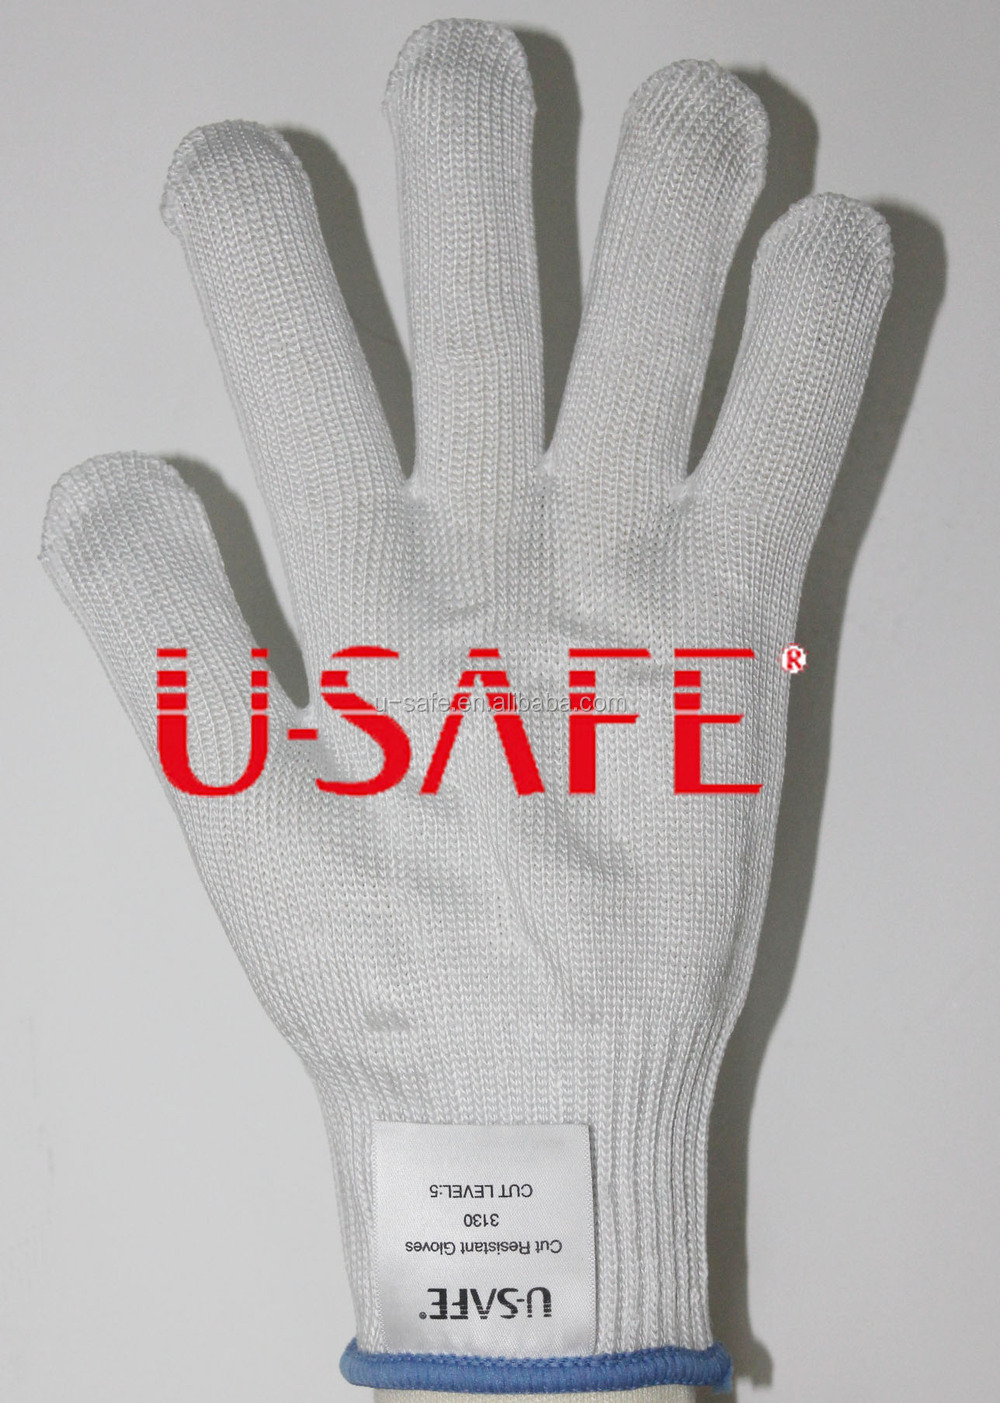 Knitted gloves Heat resistant Food processing gloves HHPE Food grade Gloves Kitchen Mesh Gloves